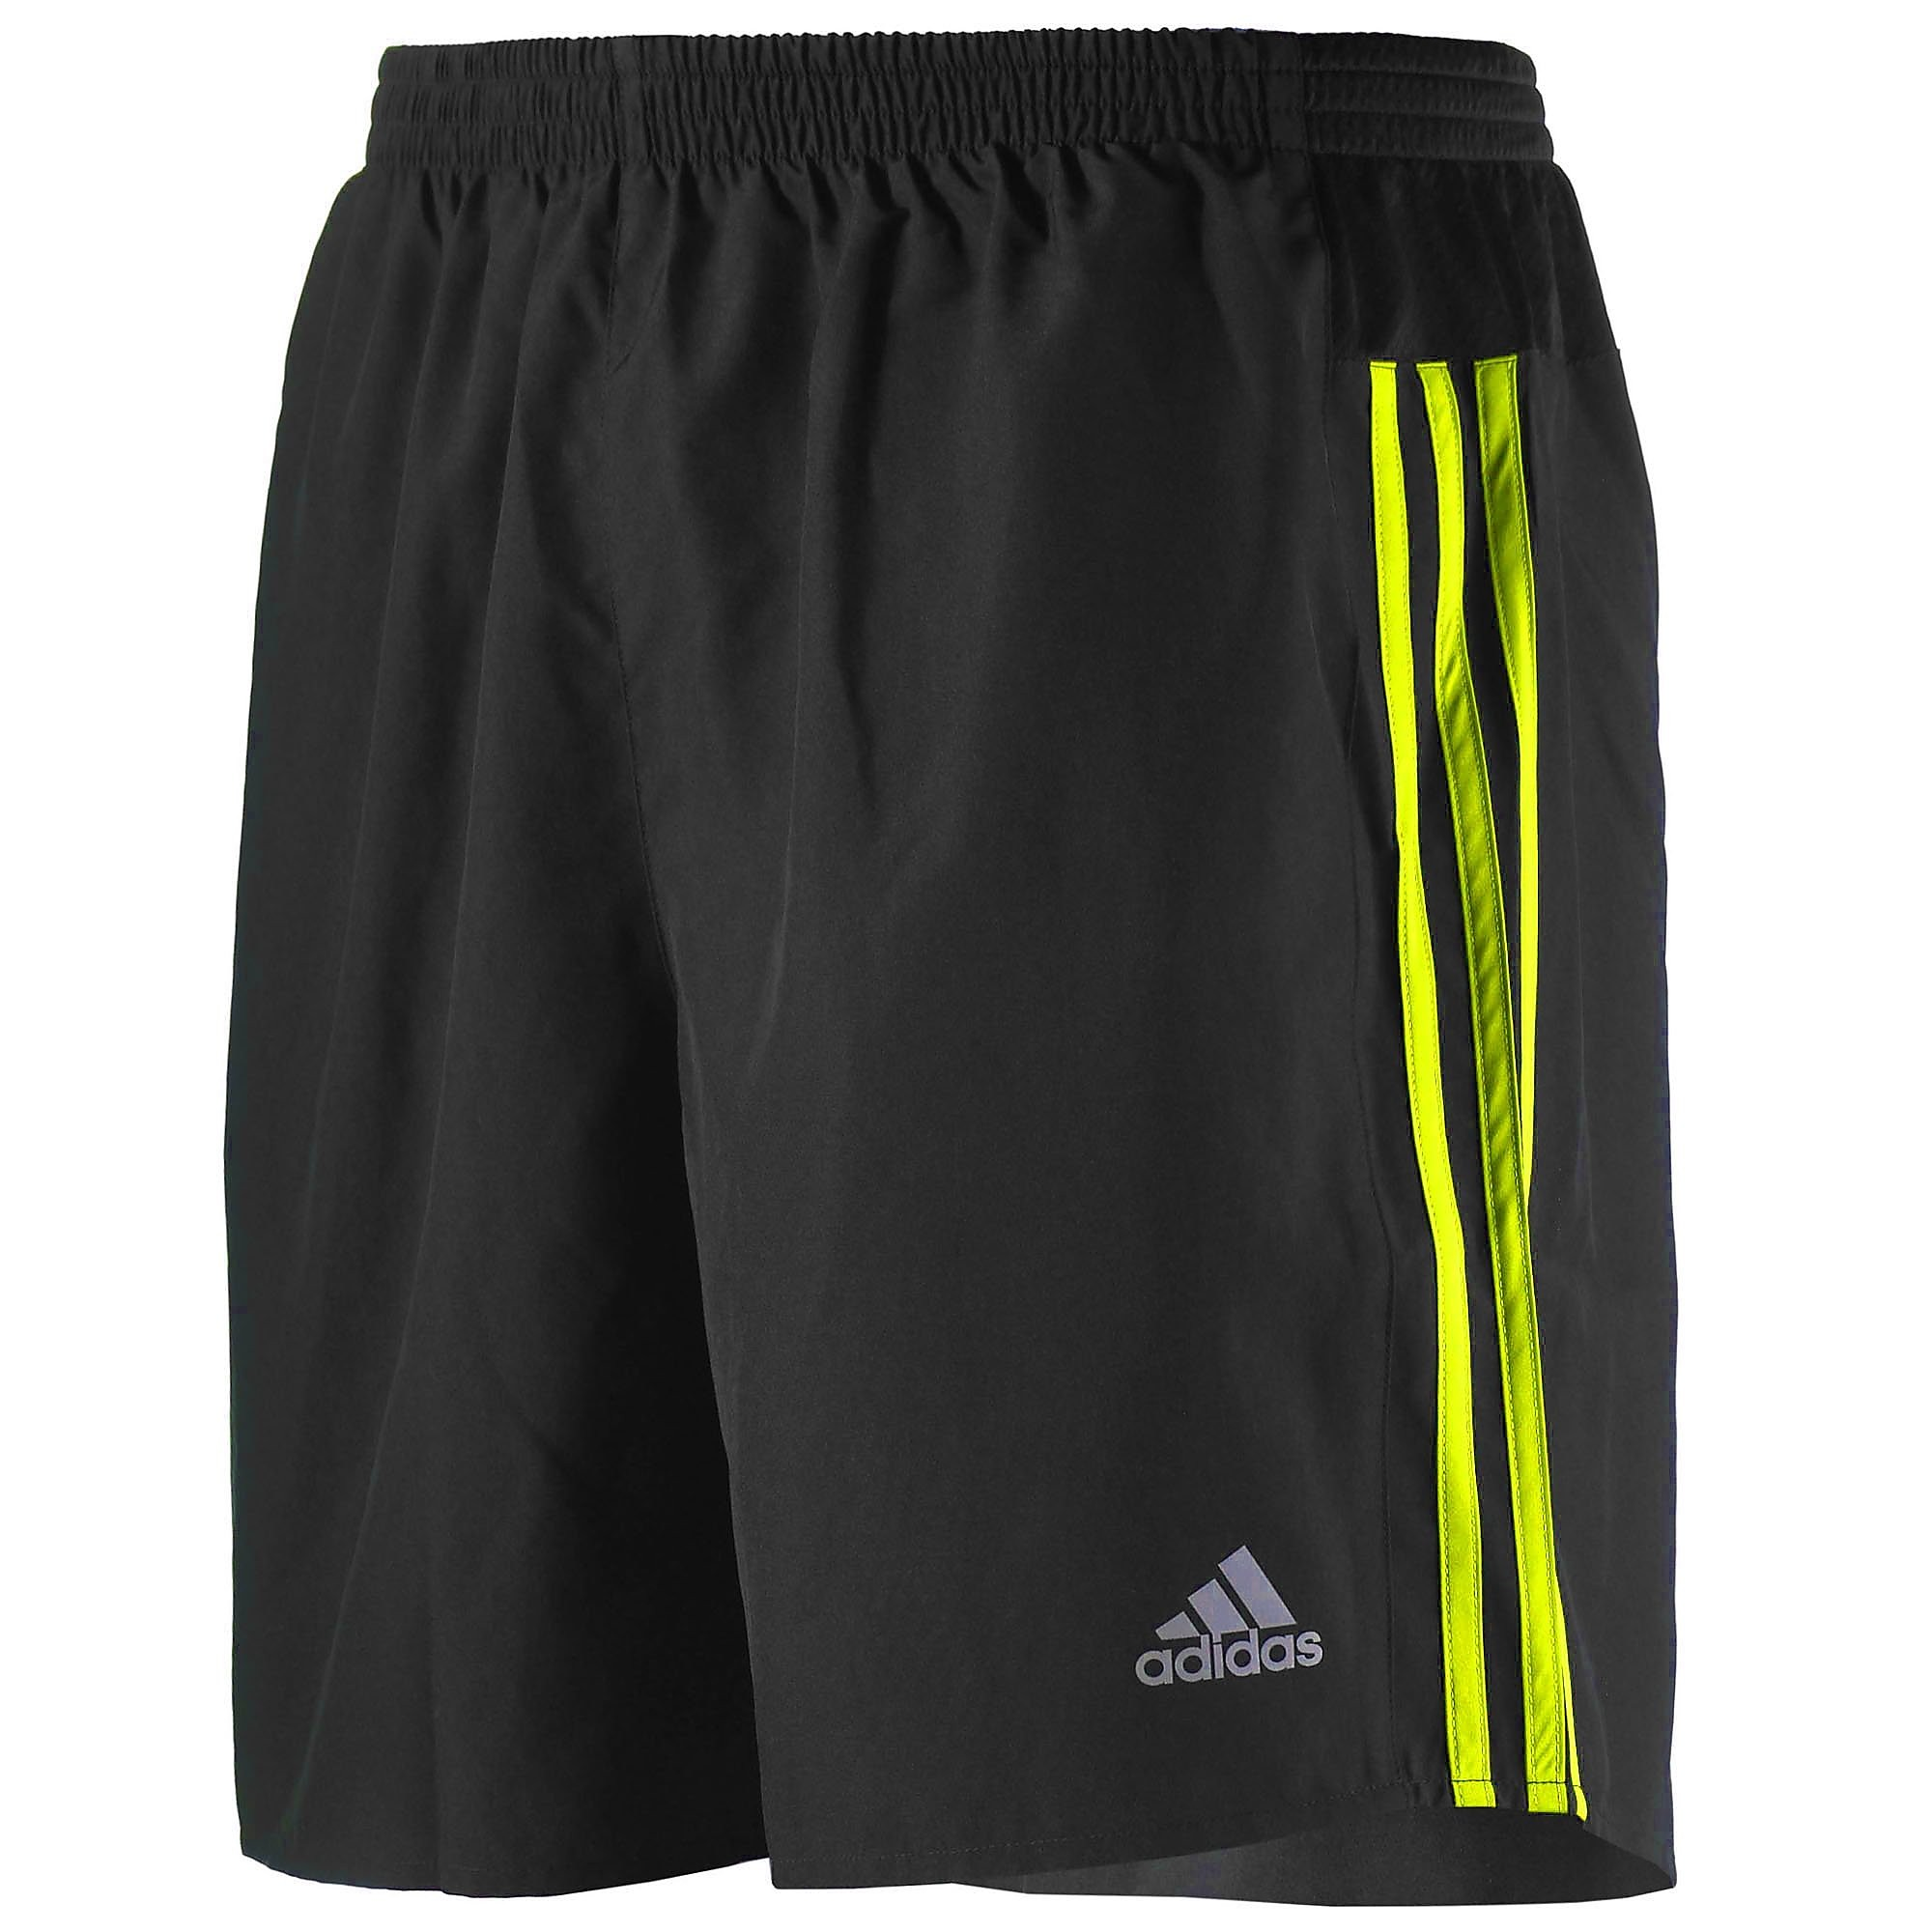 adidas RS 7 INCH SHORT